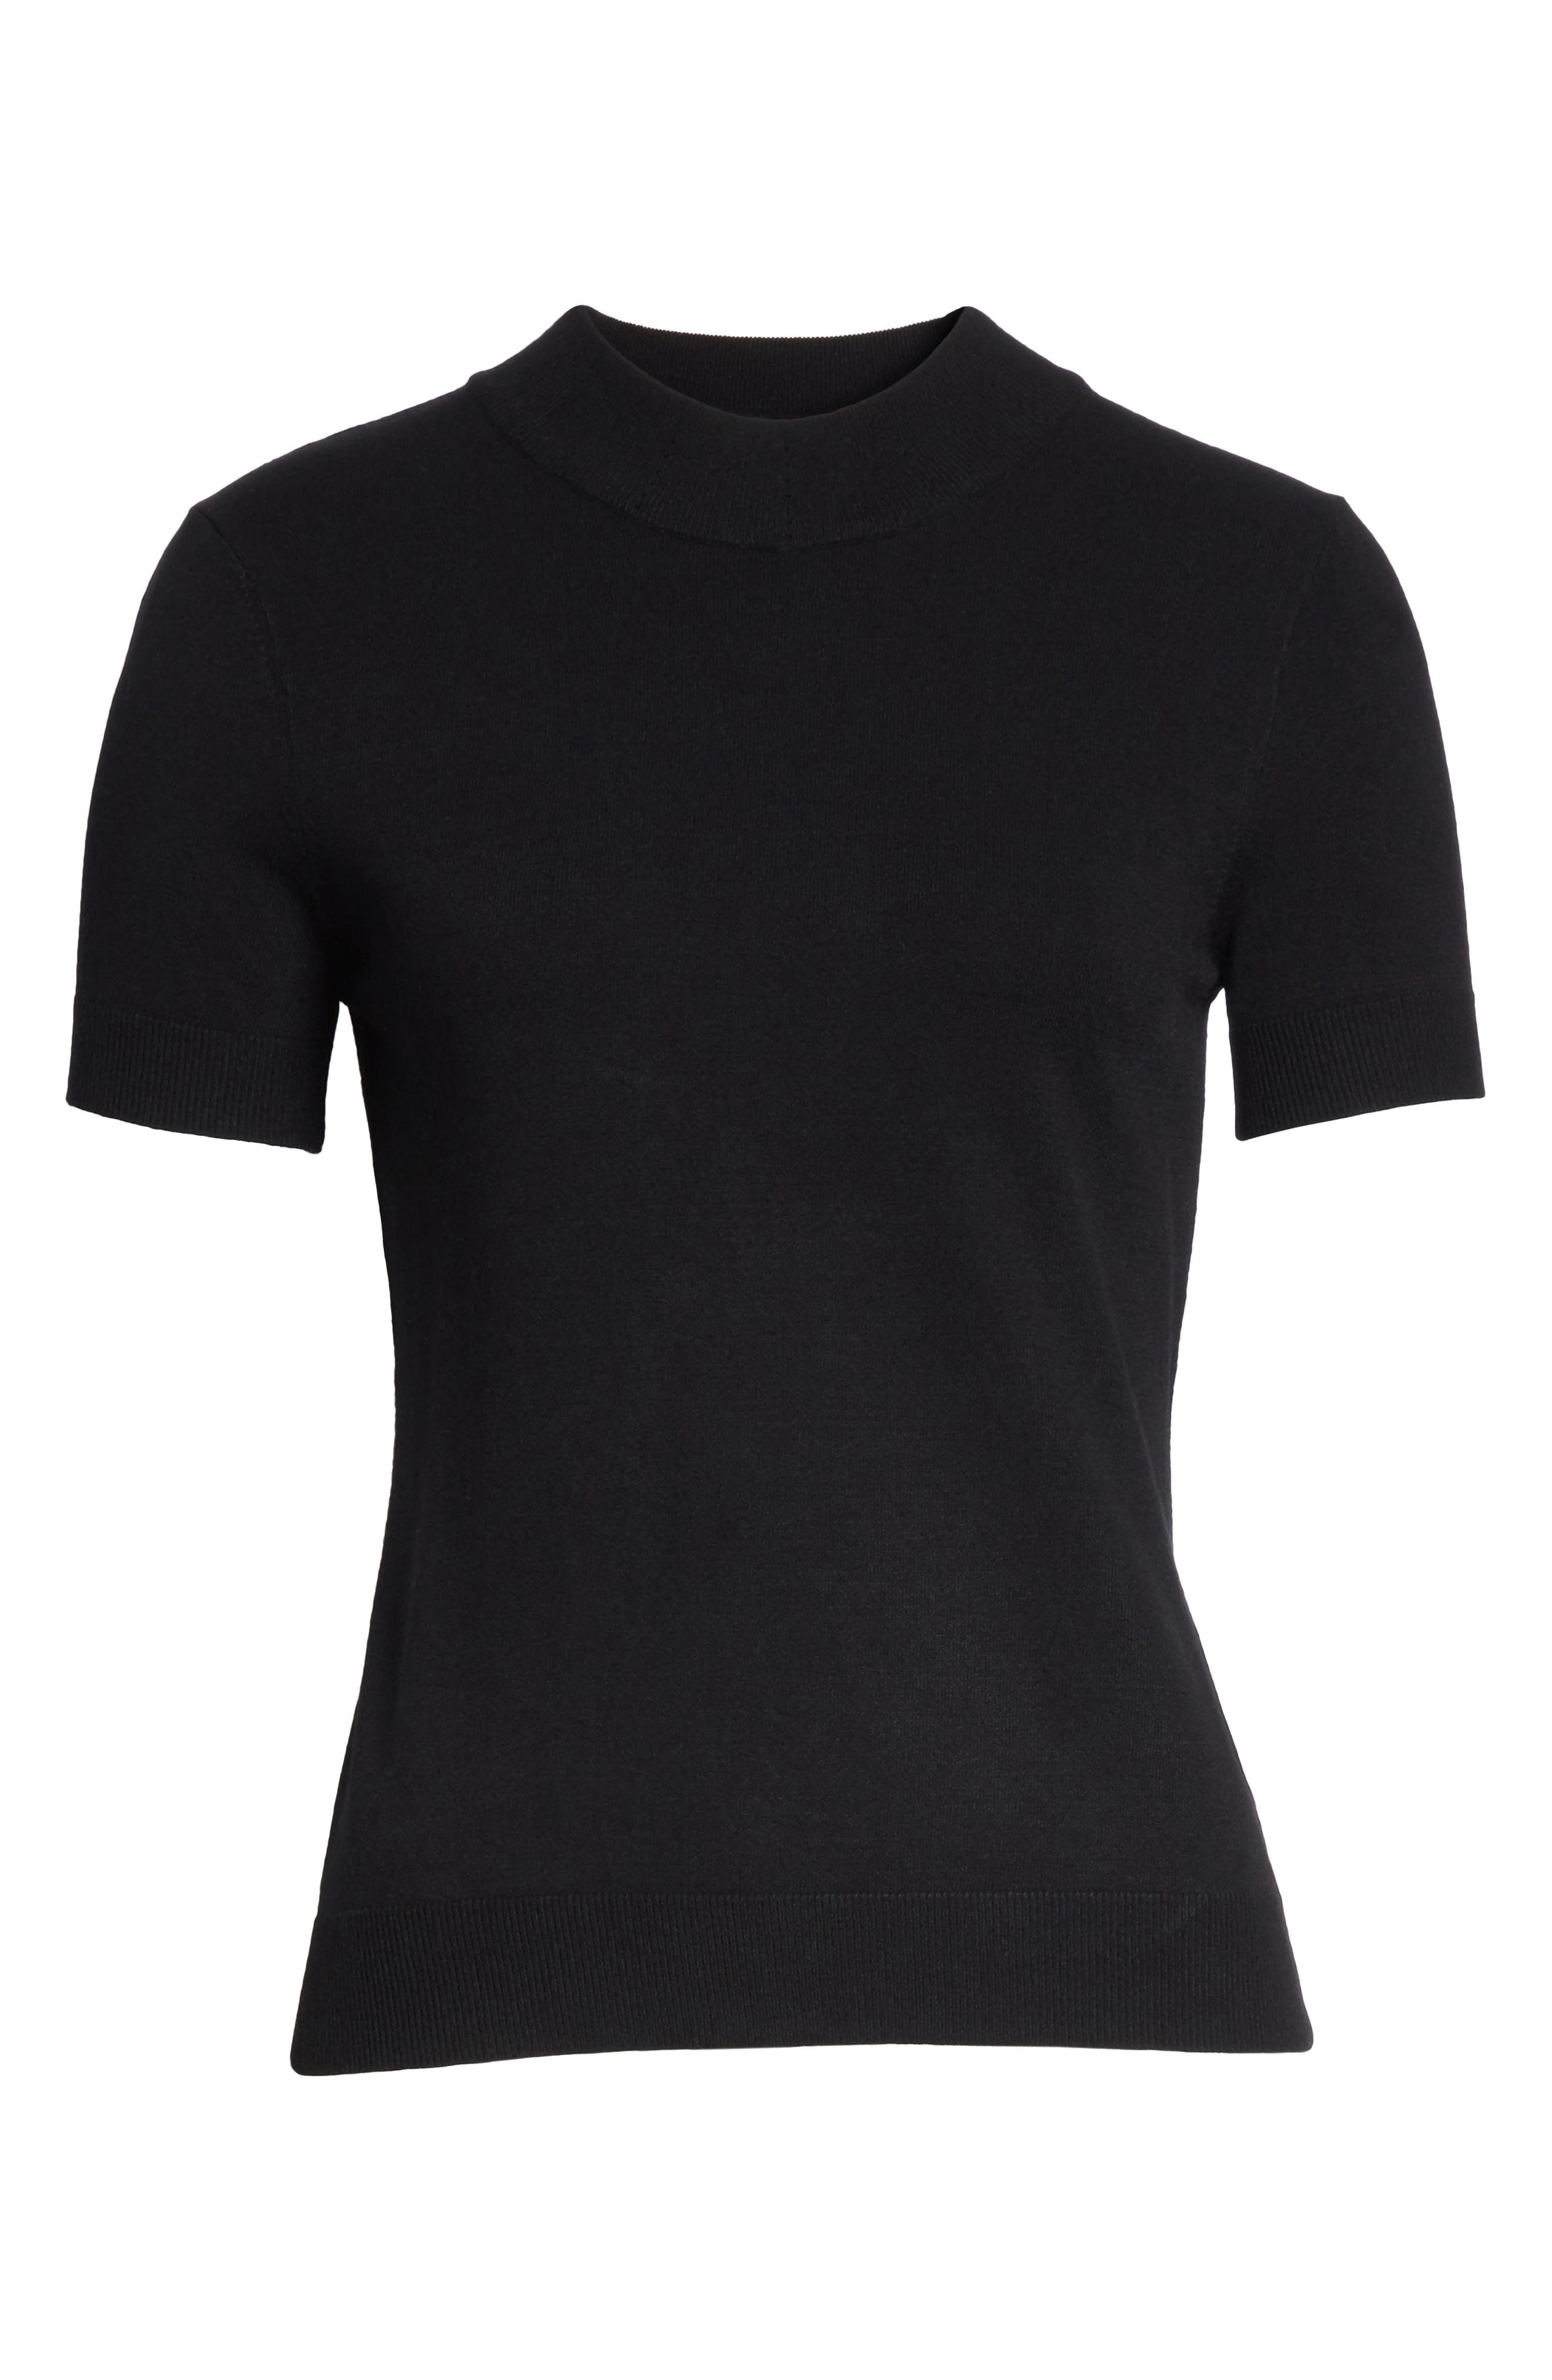 MILLY,                             Mock Neck Tee,                             Alternate thumbnail 6, color,                             001